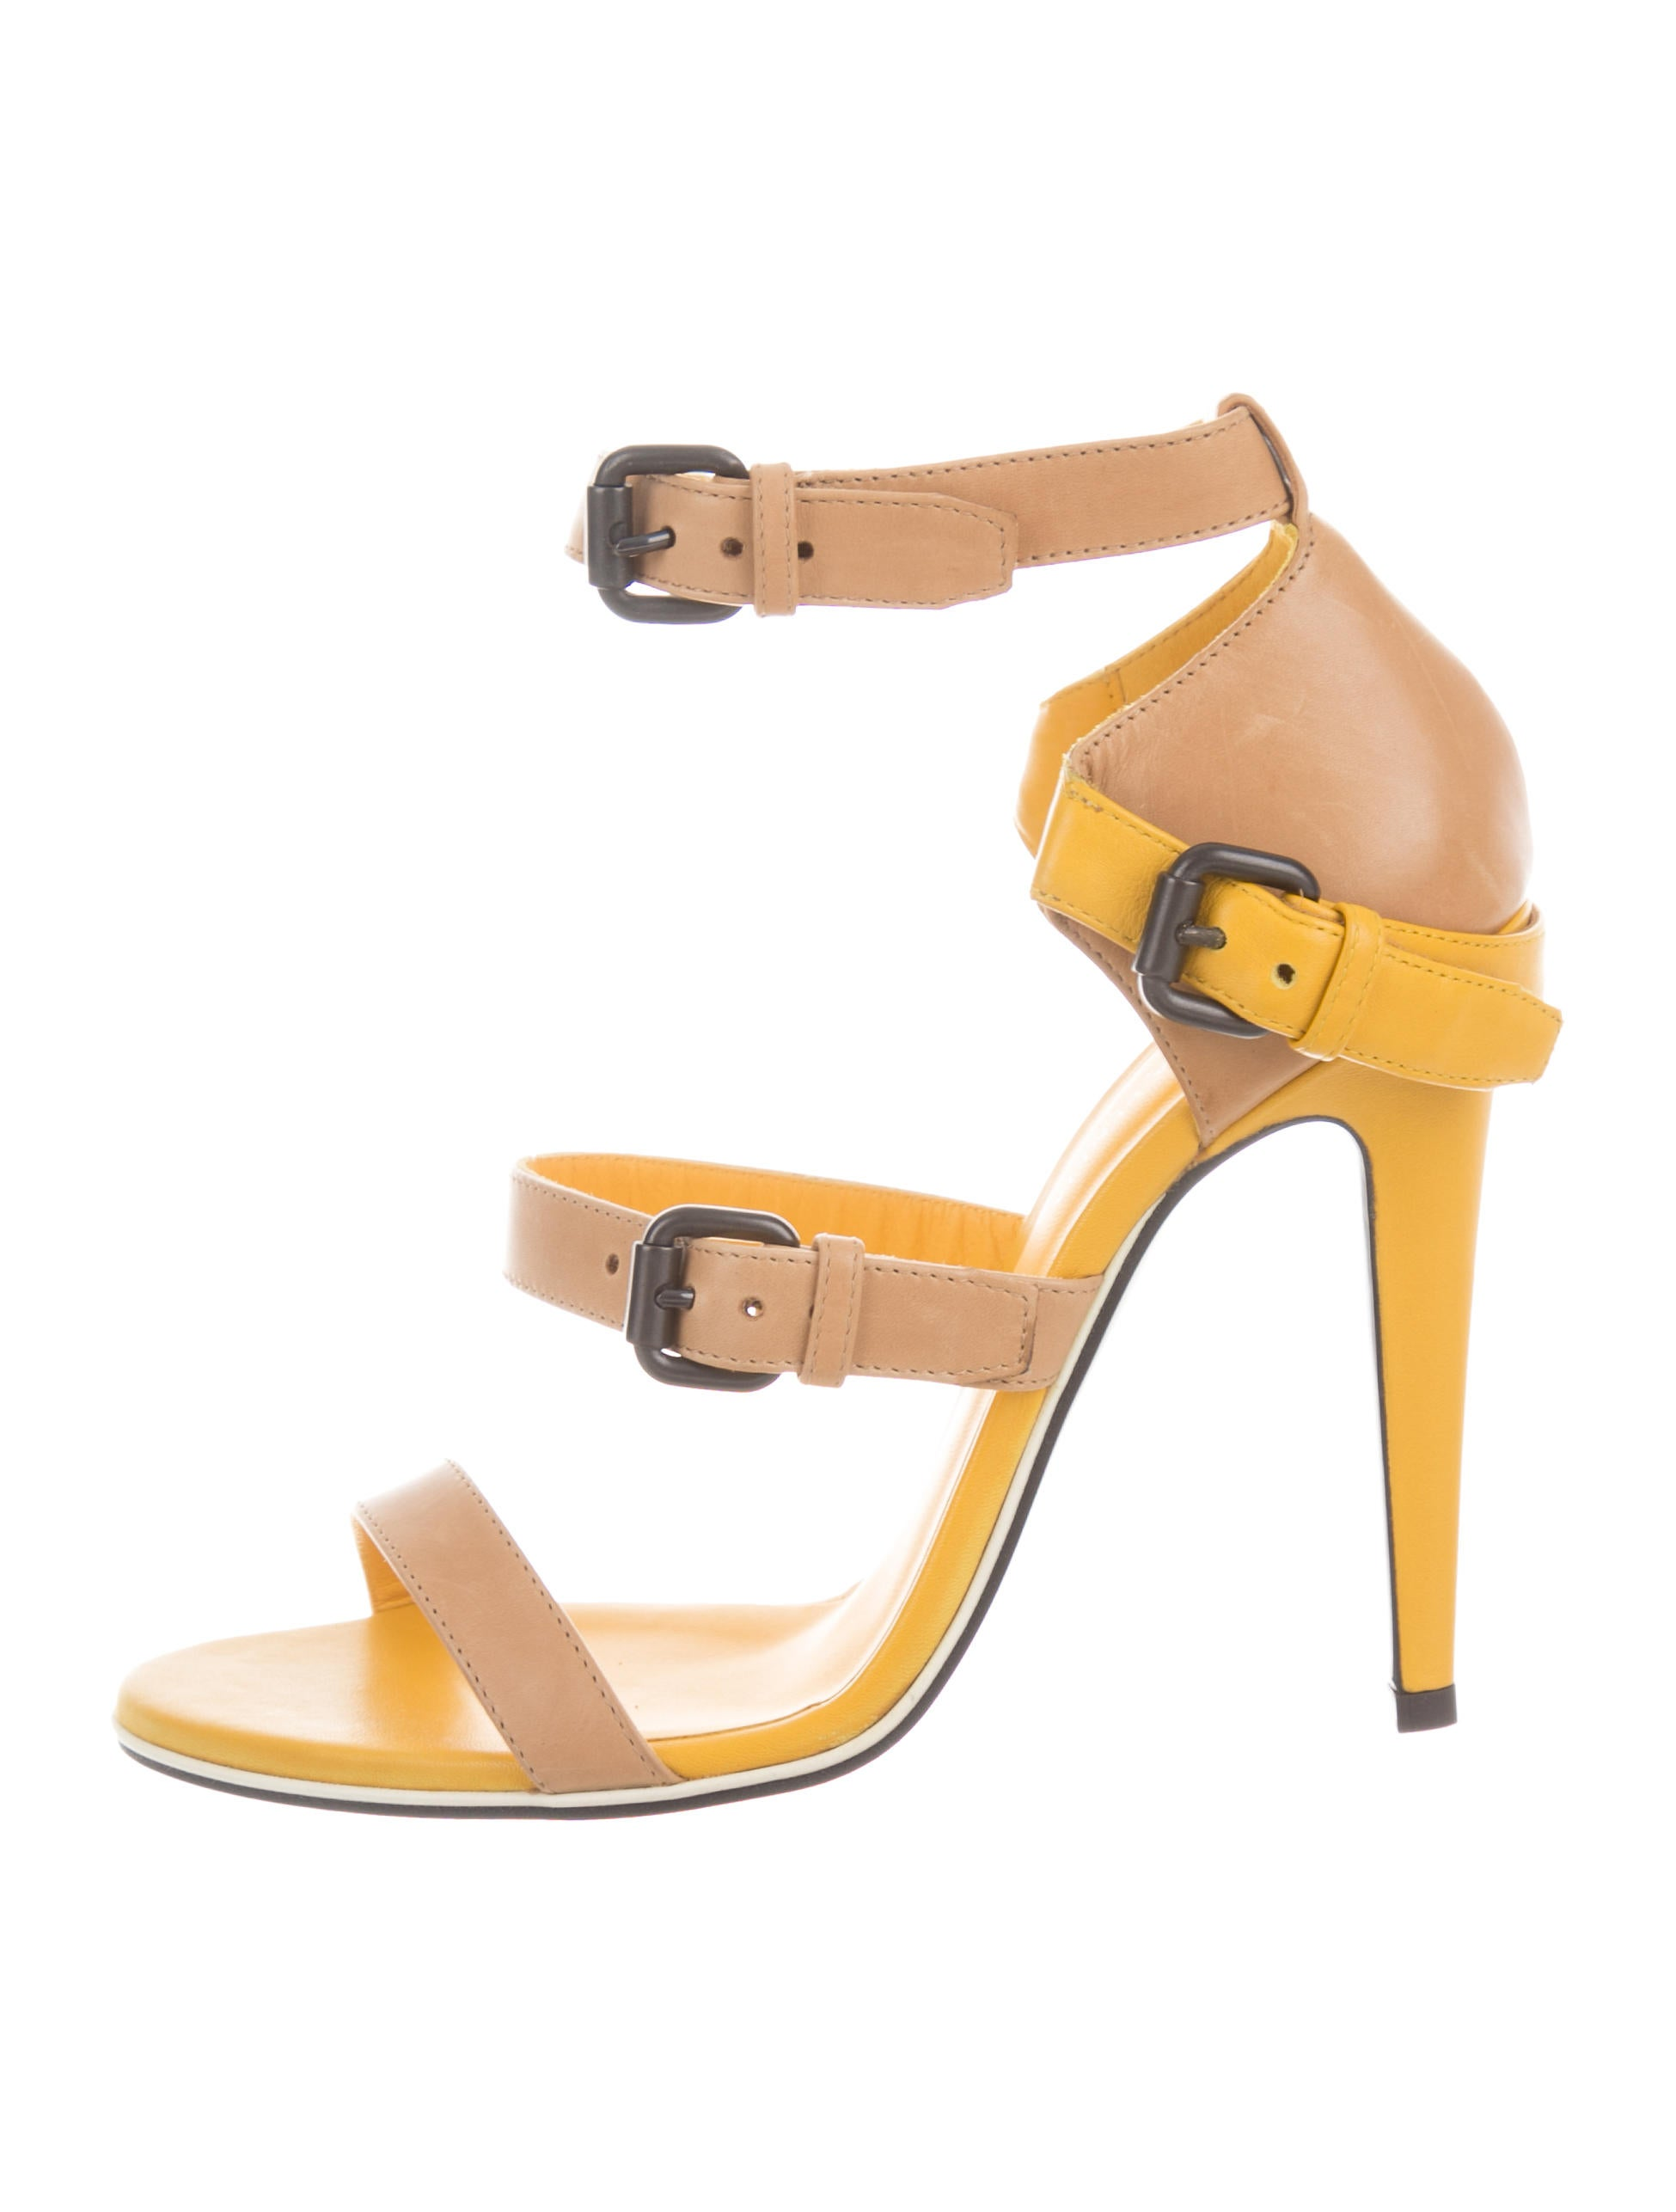 buy cheap outlet locations pick a best Bottega Veneta Leather Multistrap Sandals w/ Tags discount purchase outlet for cheap 5KBeIrD3Cl